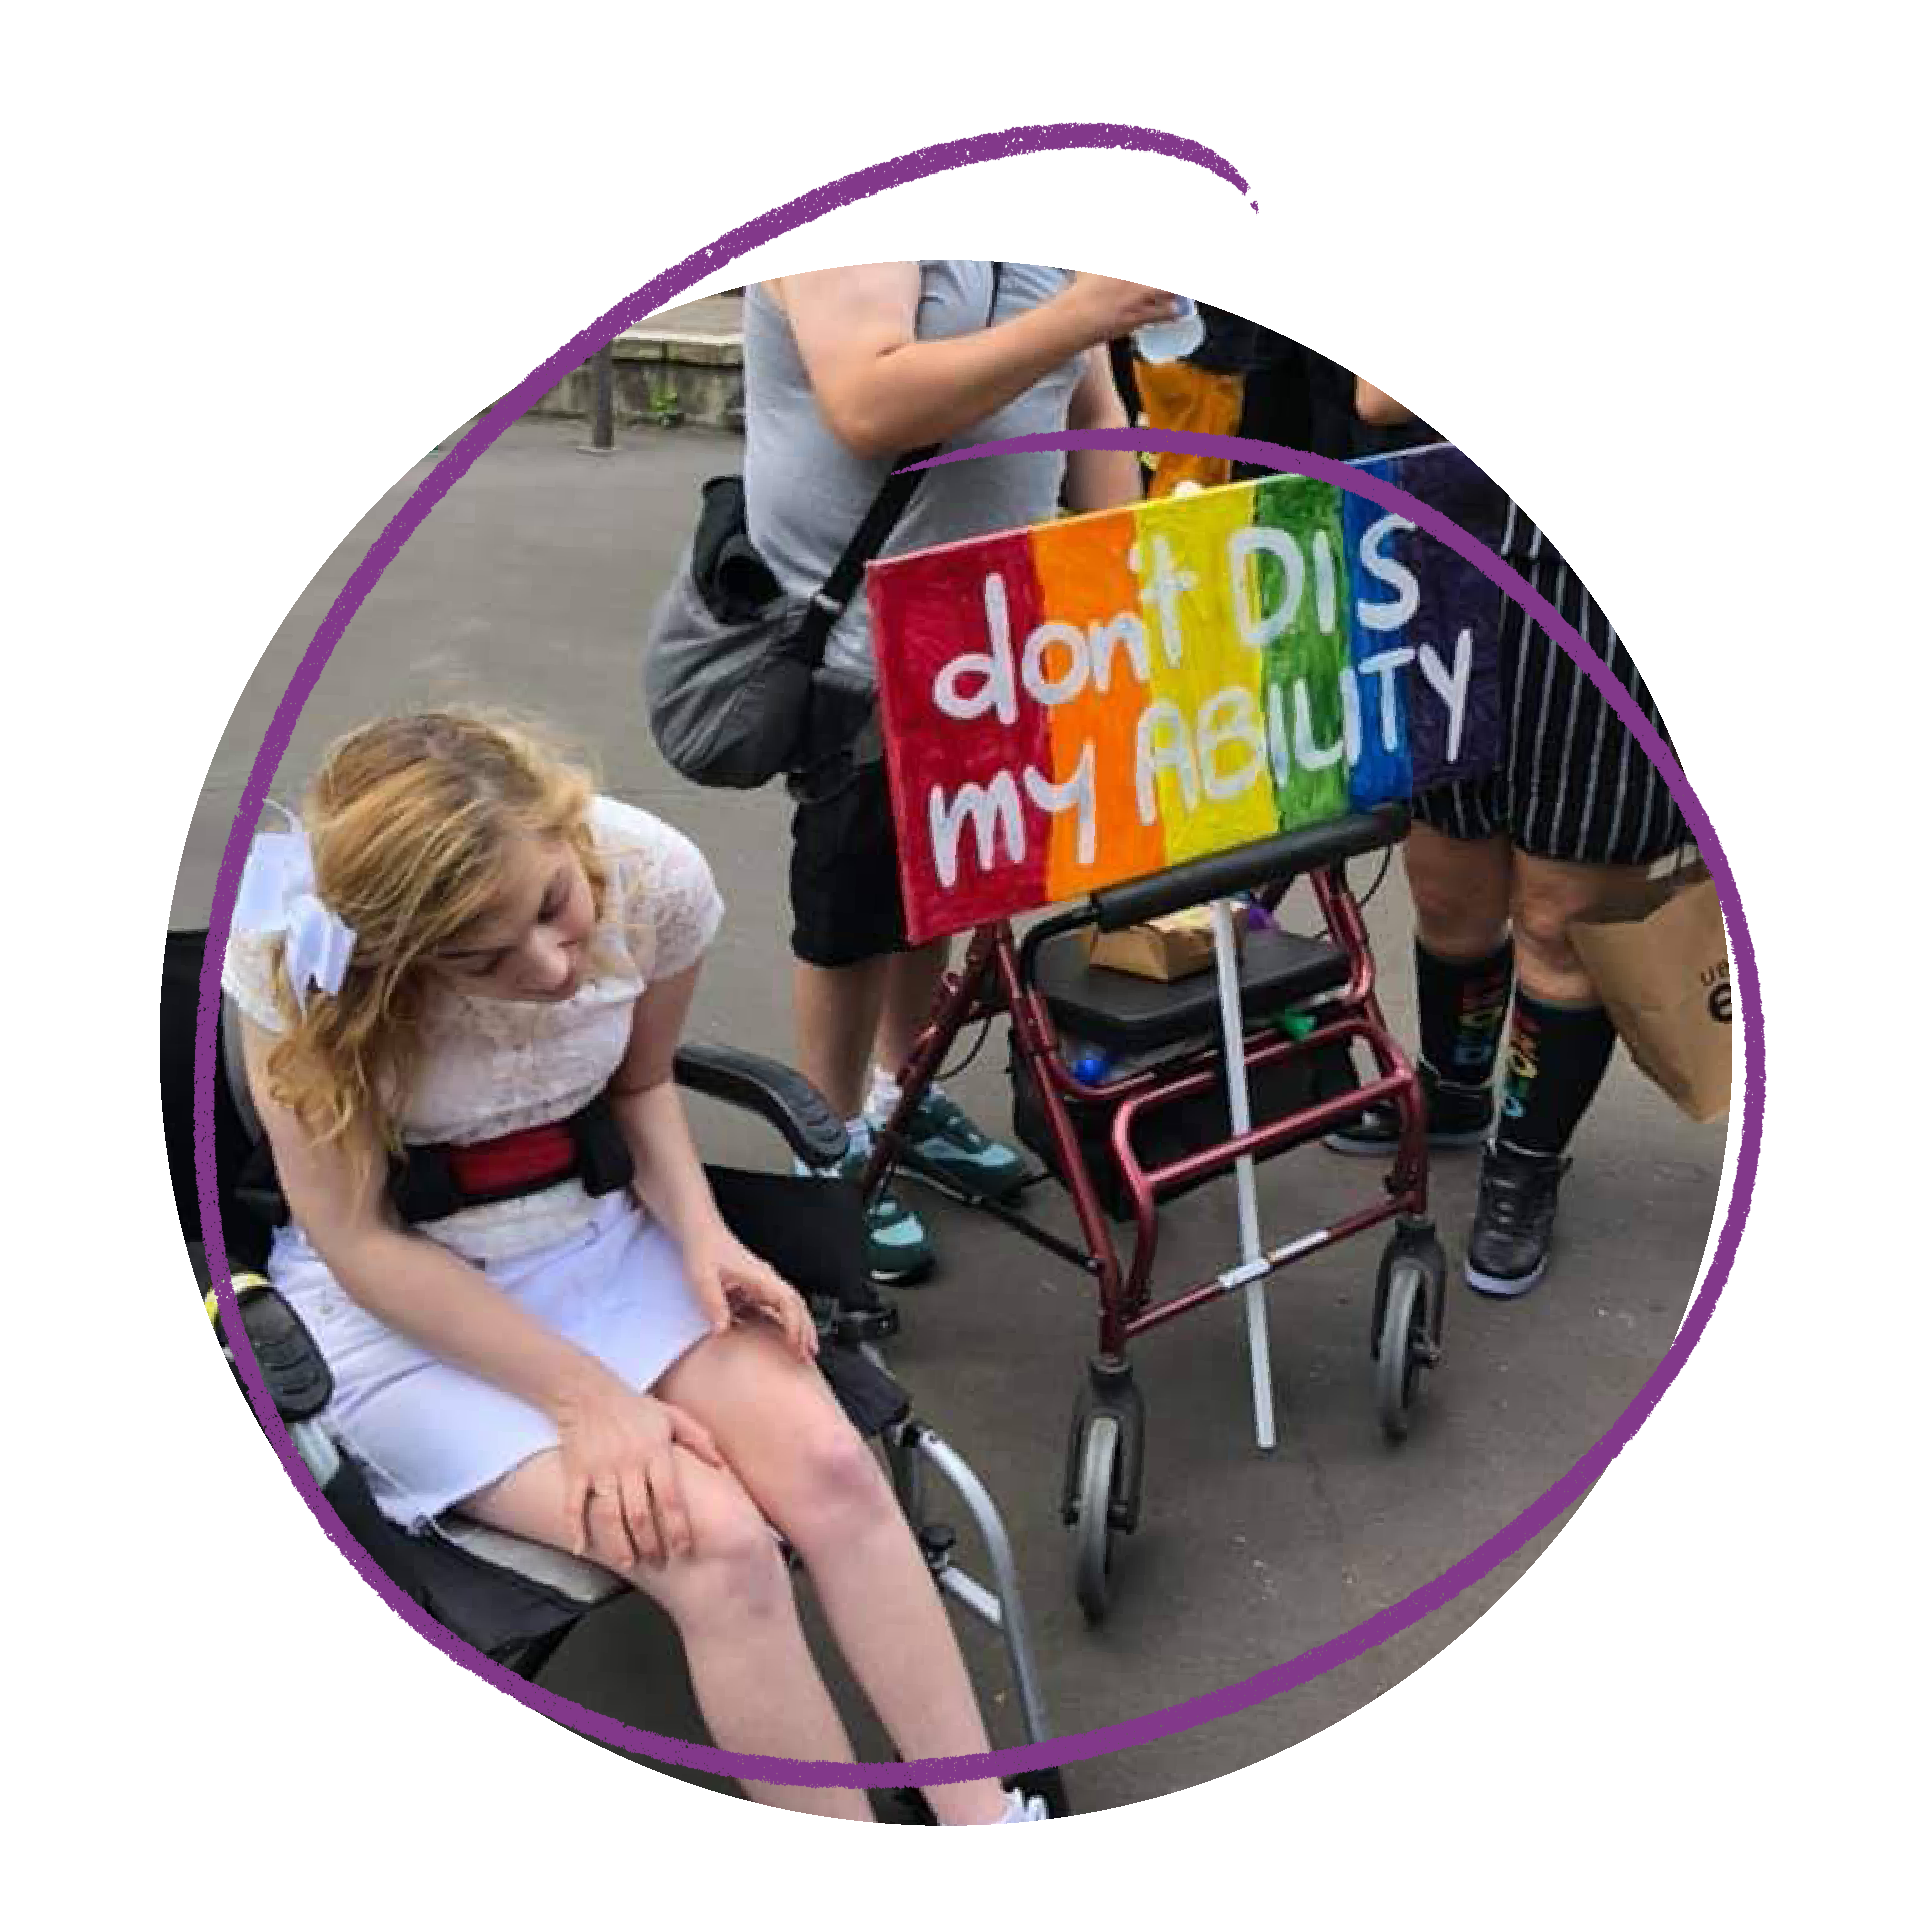 Phto of a young woman at the Mardi Gras. She is using a wheelchair and wearing a white dress. There is a person with a rainbow sign that says 'Don't DIS my ability' behind her.